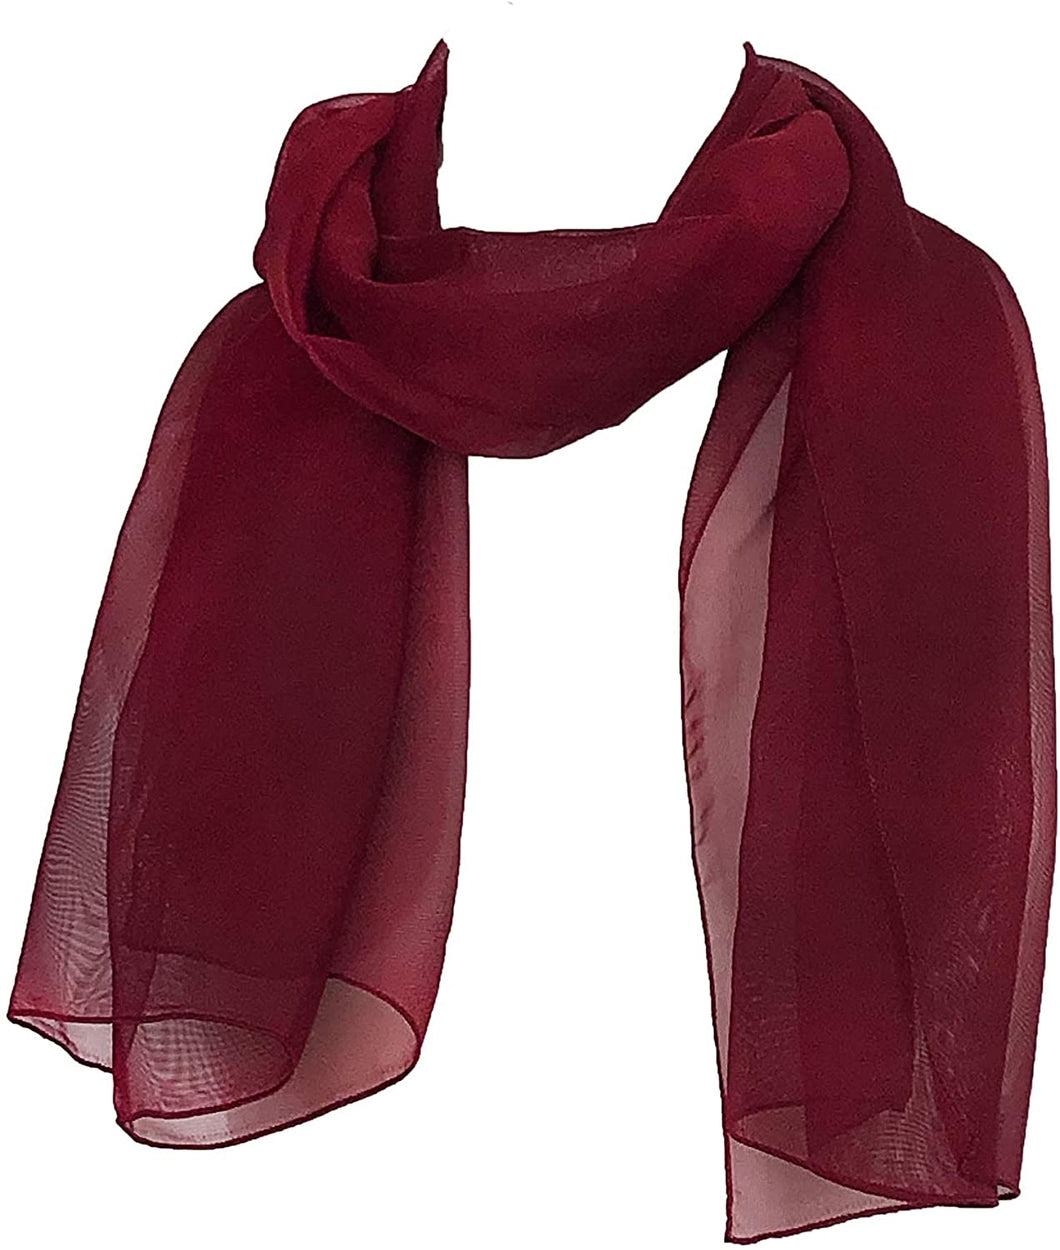 Plain Burgundy Chiffon Style Scarf Thin Pretty Scarf Great for Any Outfit Lovely Gift